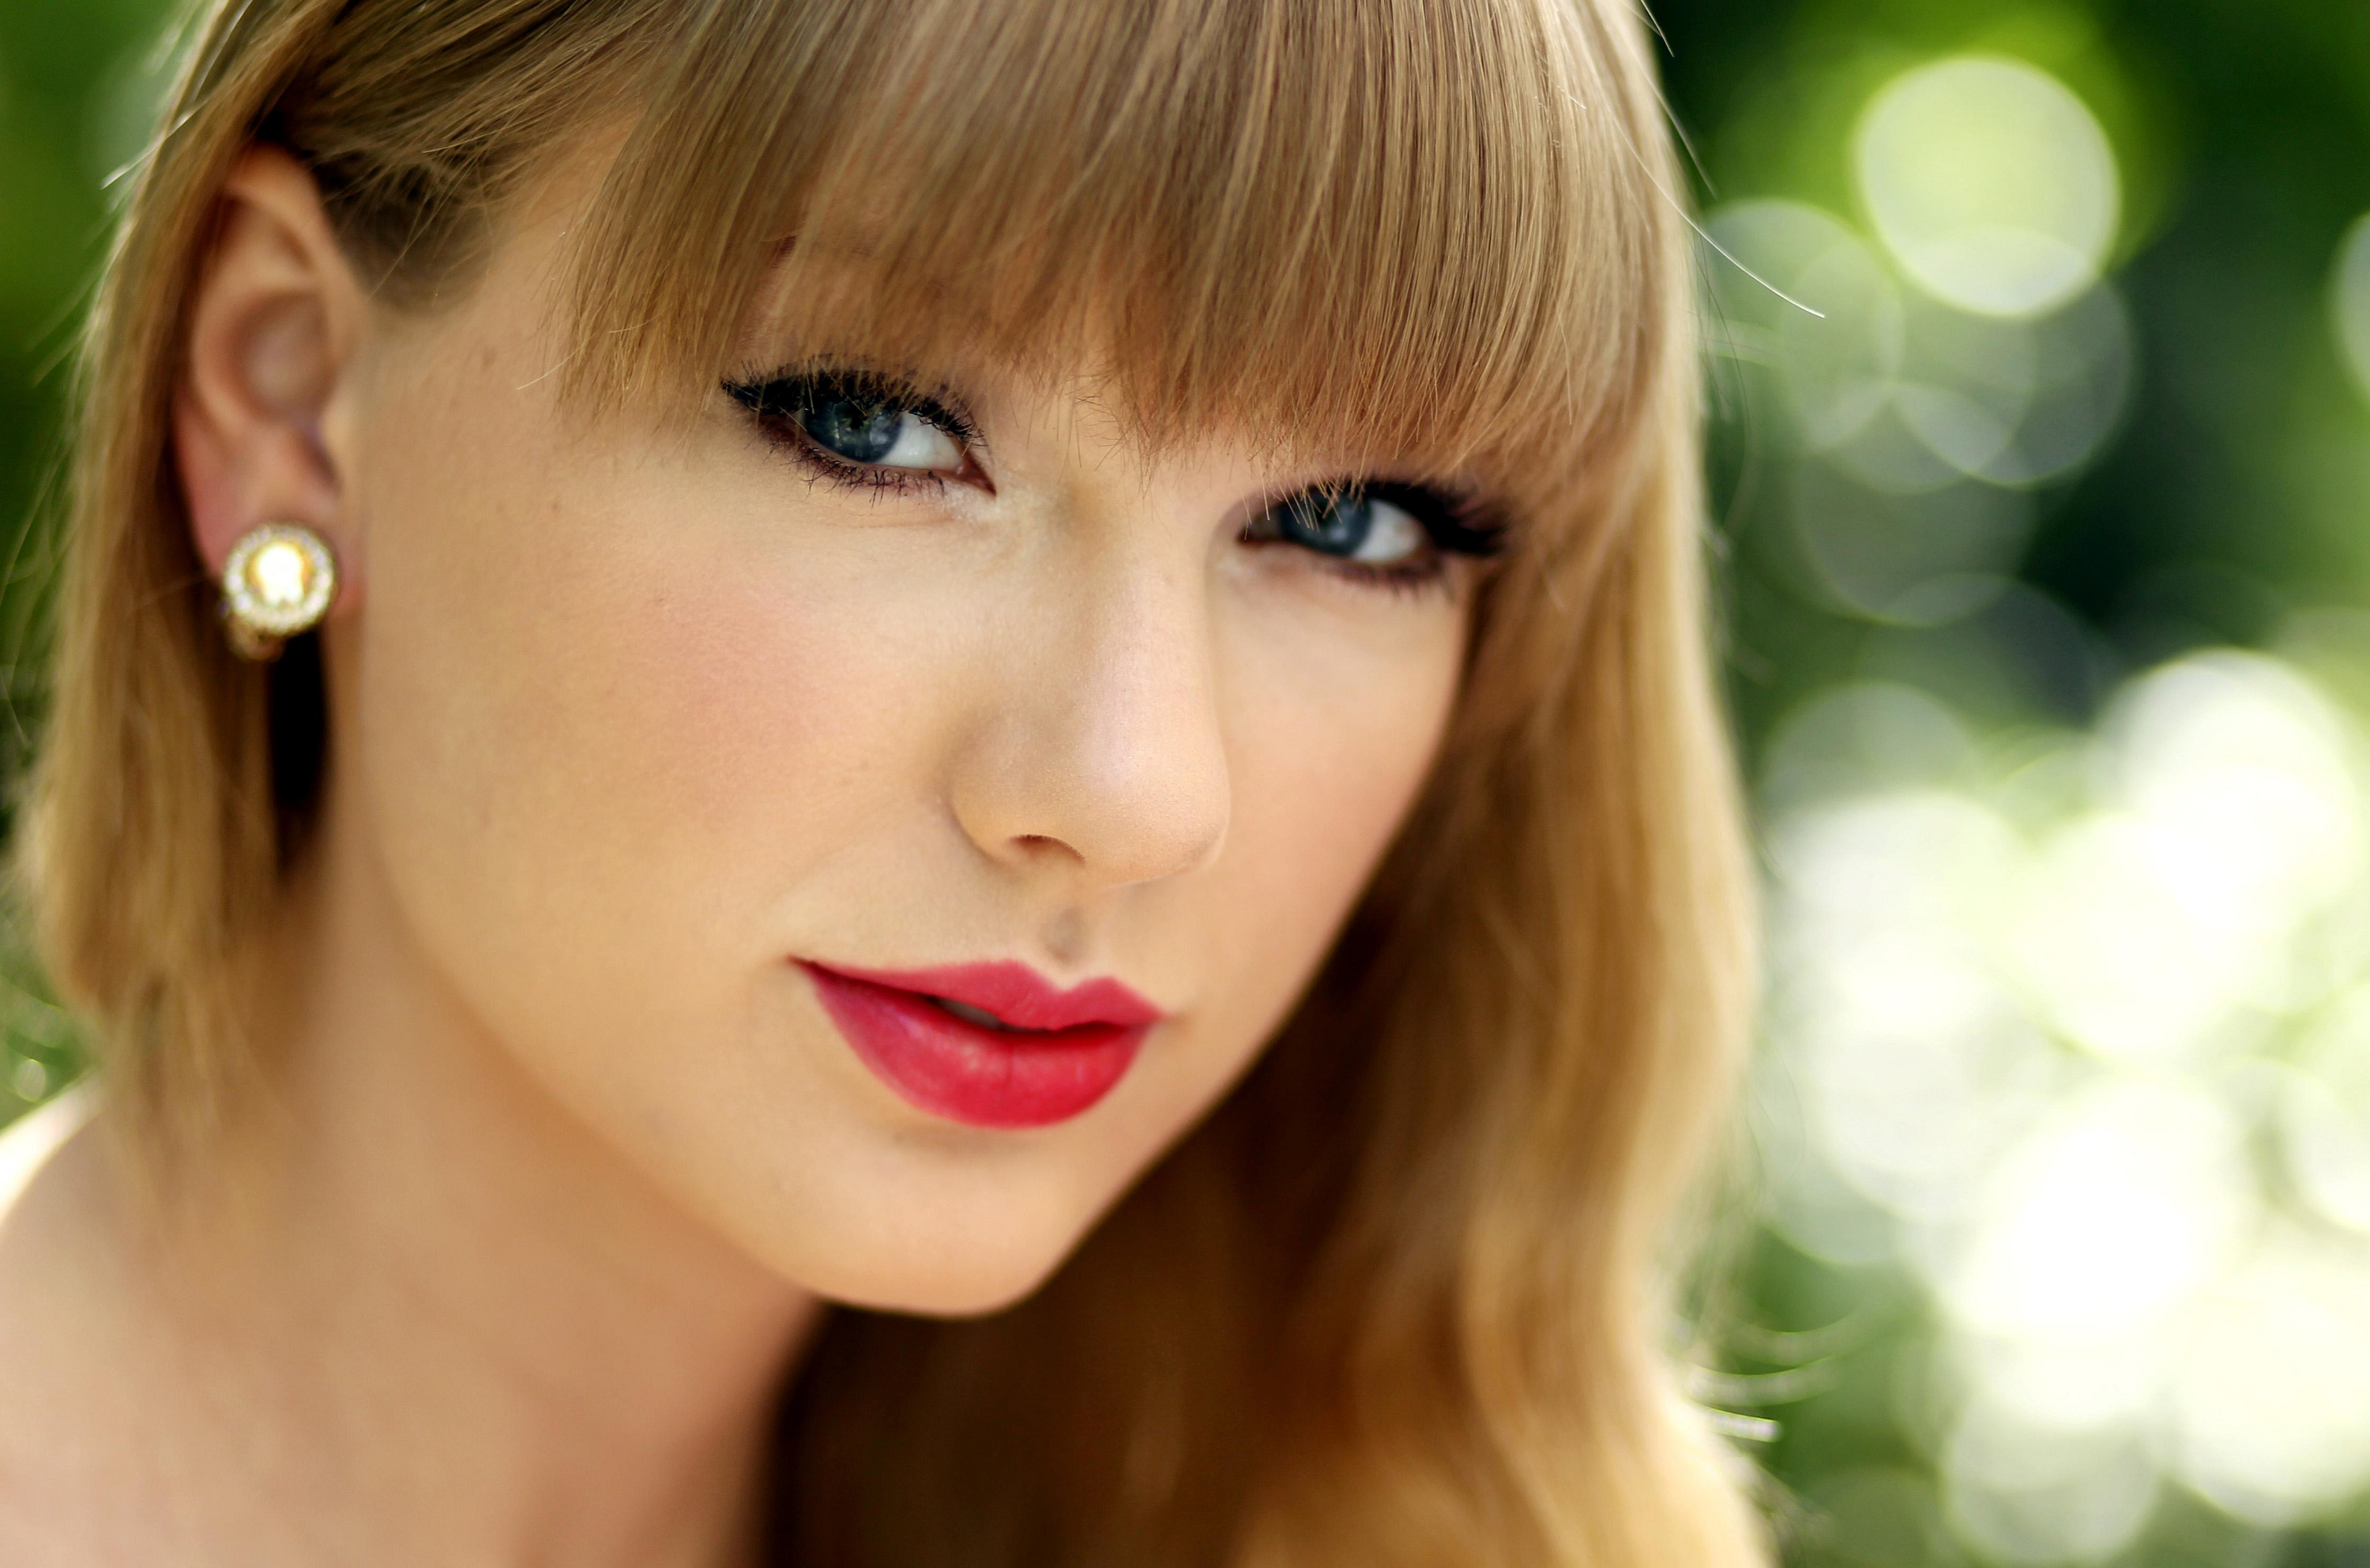 taylor swift eyes 4k wallpaper background